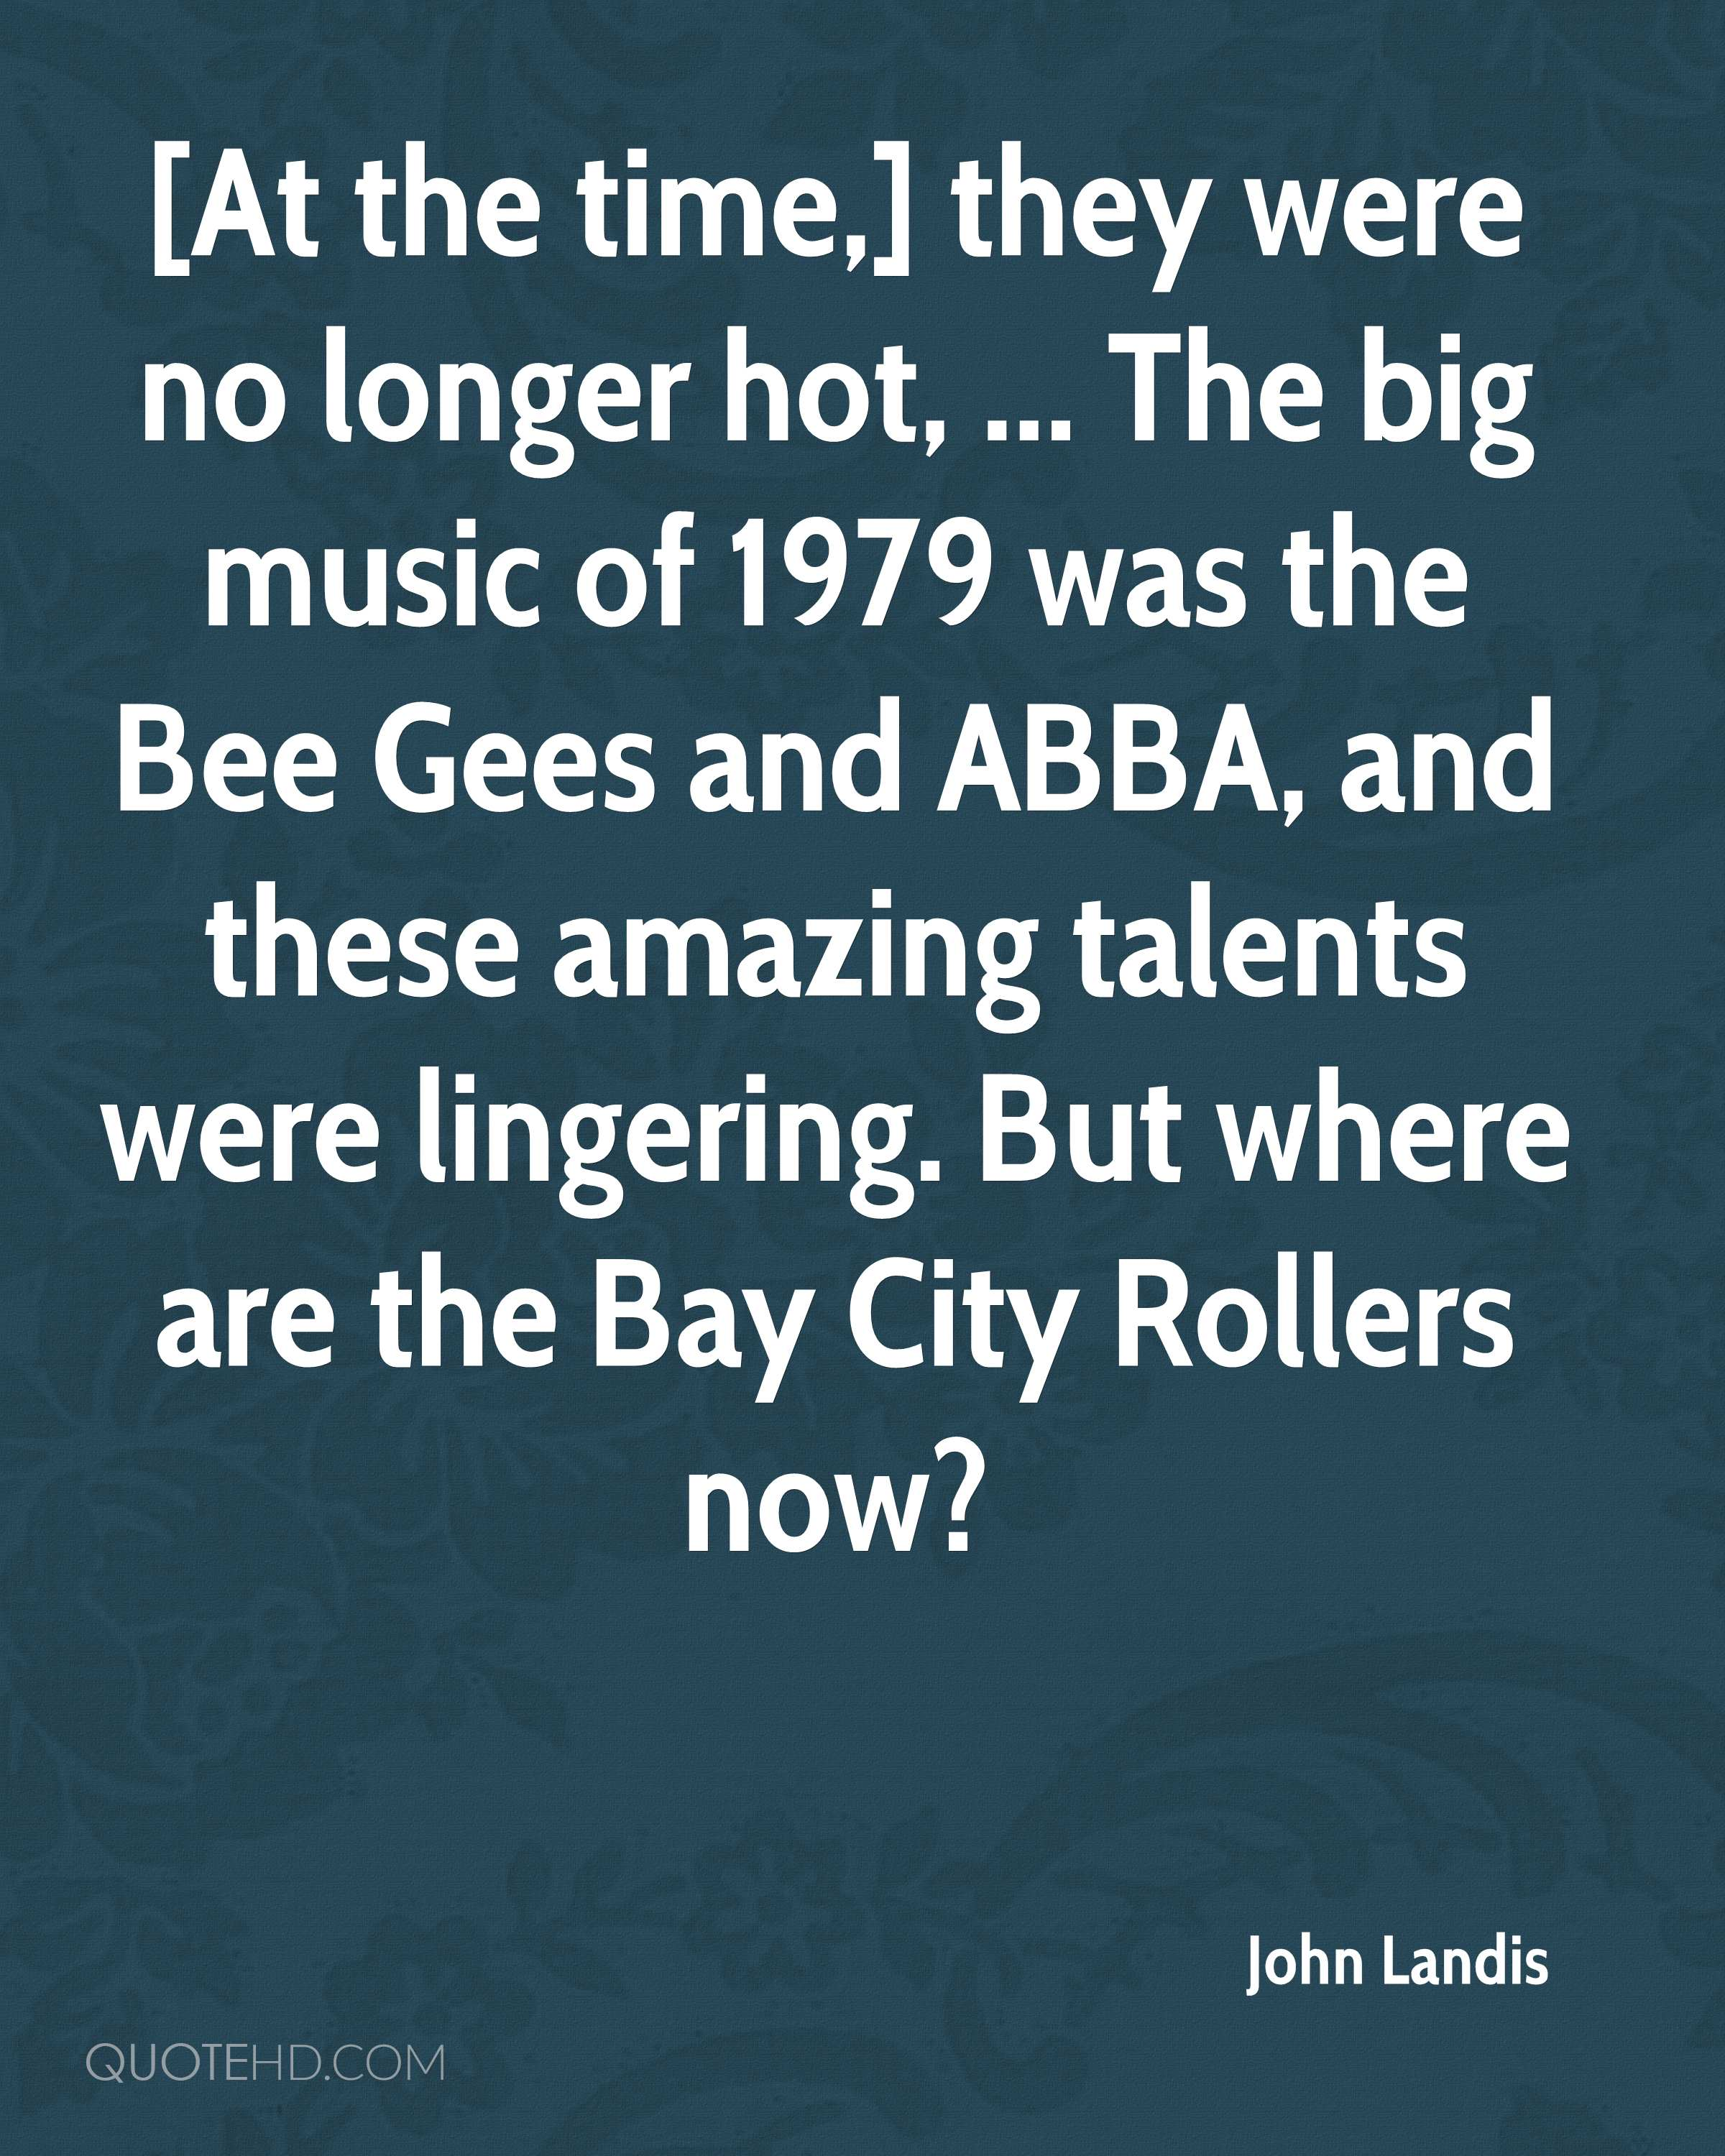 [At the time,] they were no longer hot, ... The big music of 1979 was the Bee Gees and ABBA, and these amazing talents were lingering. But where are the Bay City Rollers now?